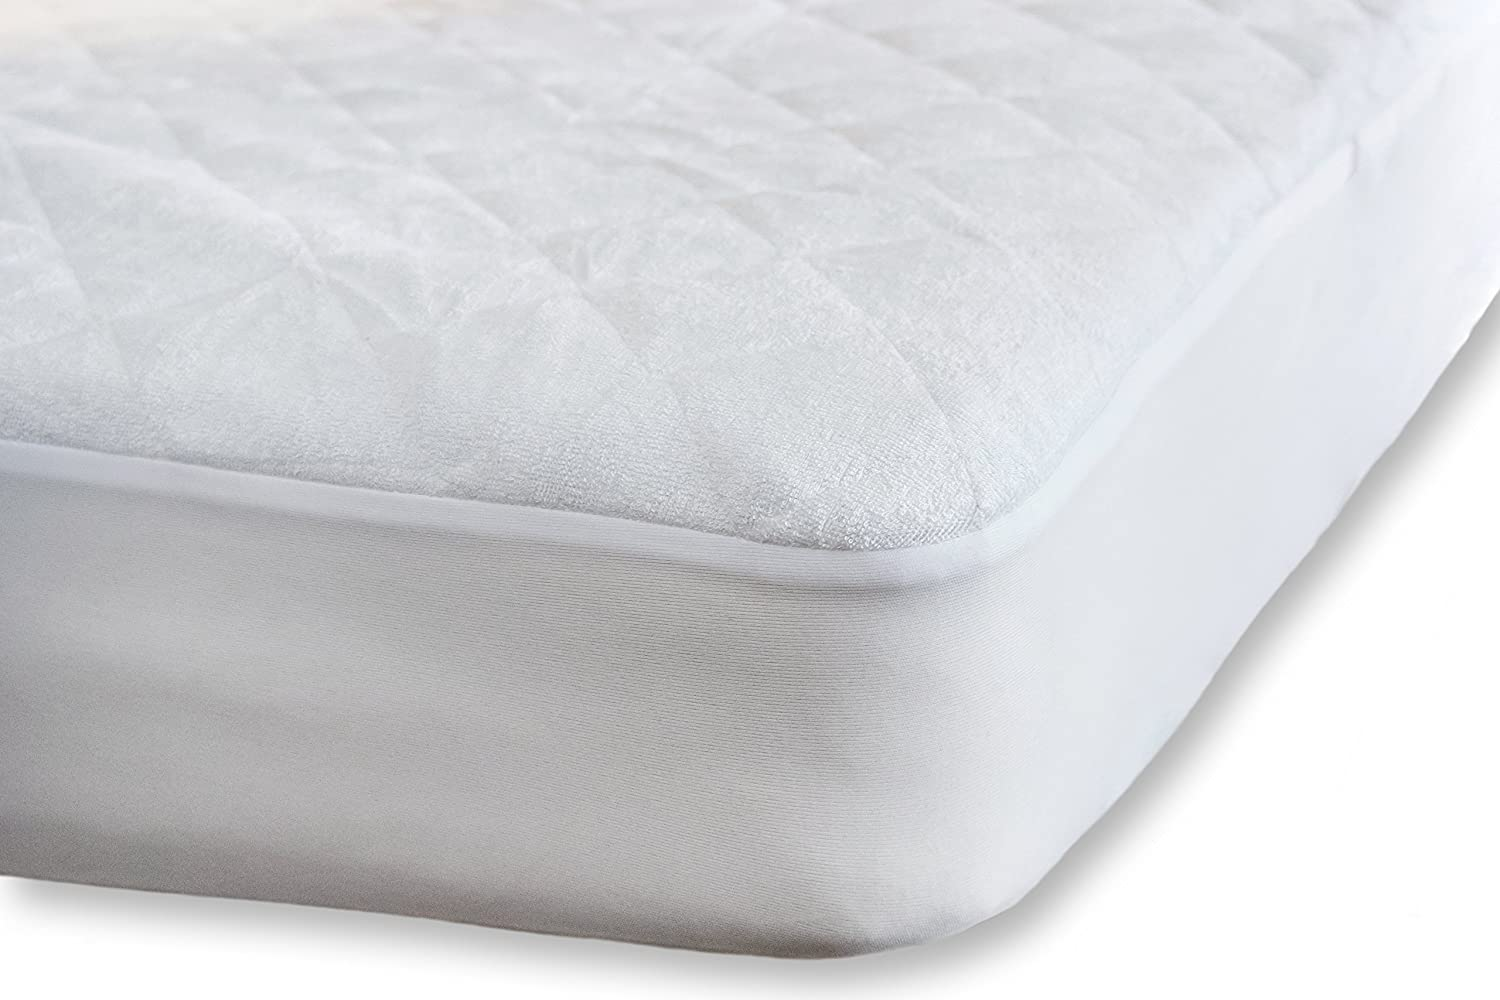 Waterproof Fitted Crib Mattress Protector - Washable Organic Bamboo Terry Crib Mattress Pad - Noiseless, Breathable & Hypoallergenic Crib Mattress Cover for Potty Training Toddlers & Infant Cribs Mayflowers